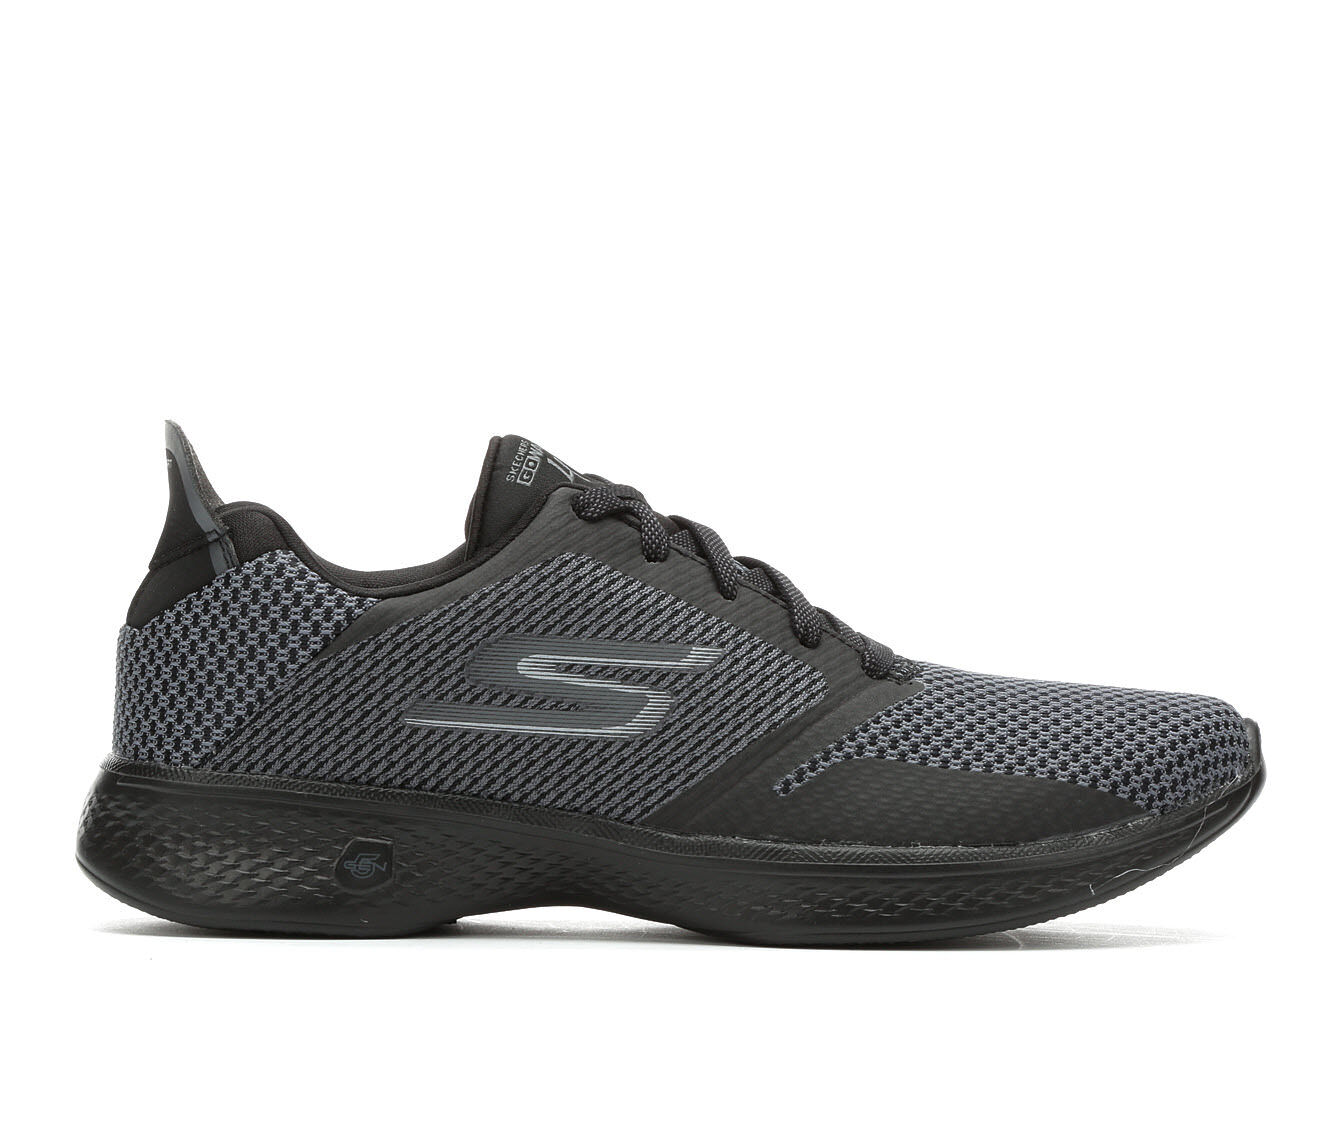 cheapest place to buy skechers go walk